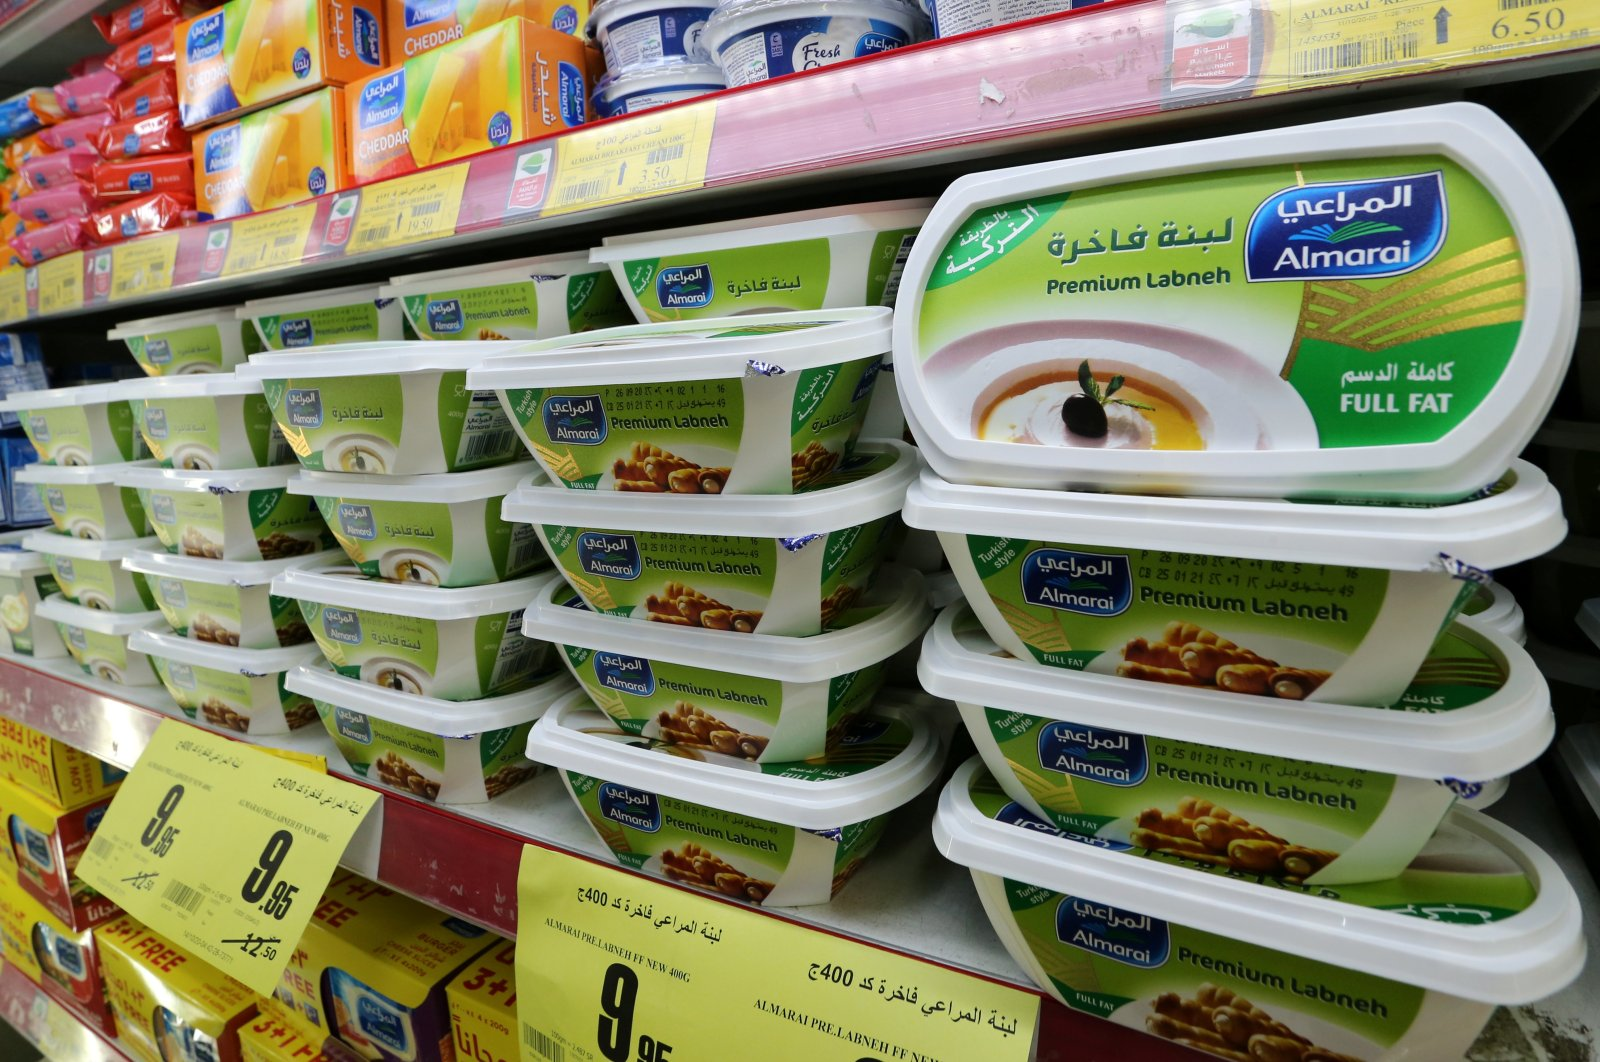 Saudi dairy products are displayed at a supermarket after Saudi Arabia's retail stores urged customers to boycott Turkish products, in Riyadh, Saudi Arabia, Oct. 18, 2020. (Reuters Photo)